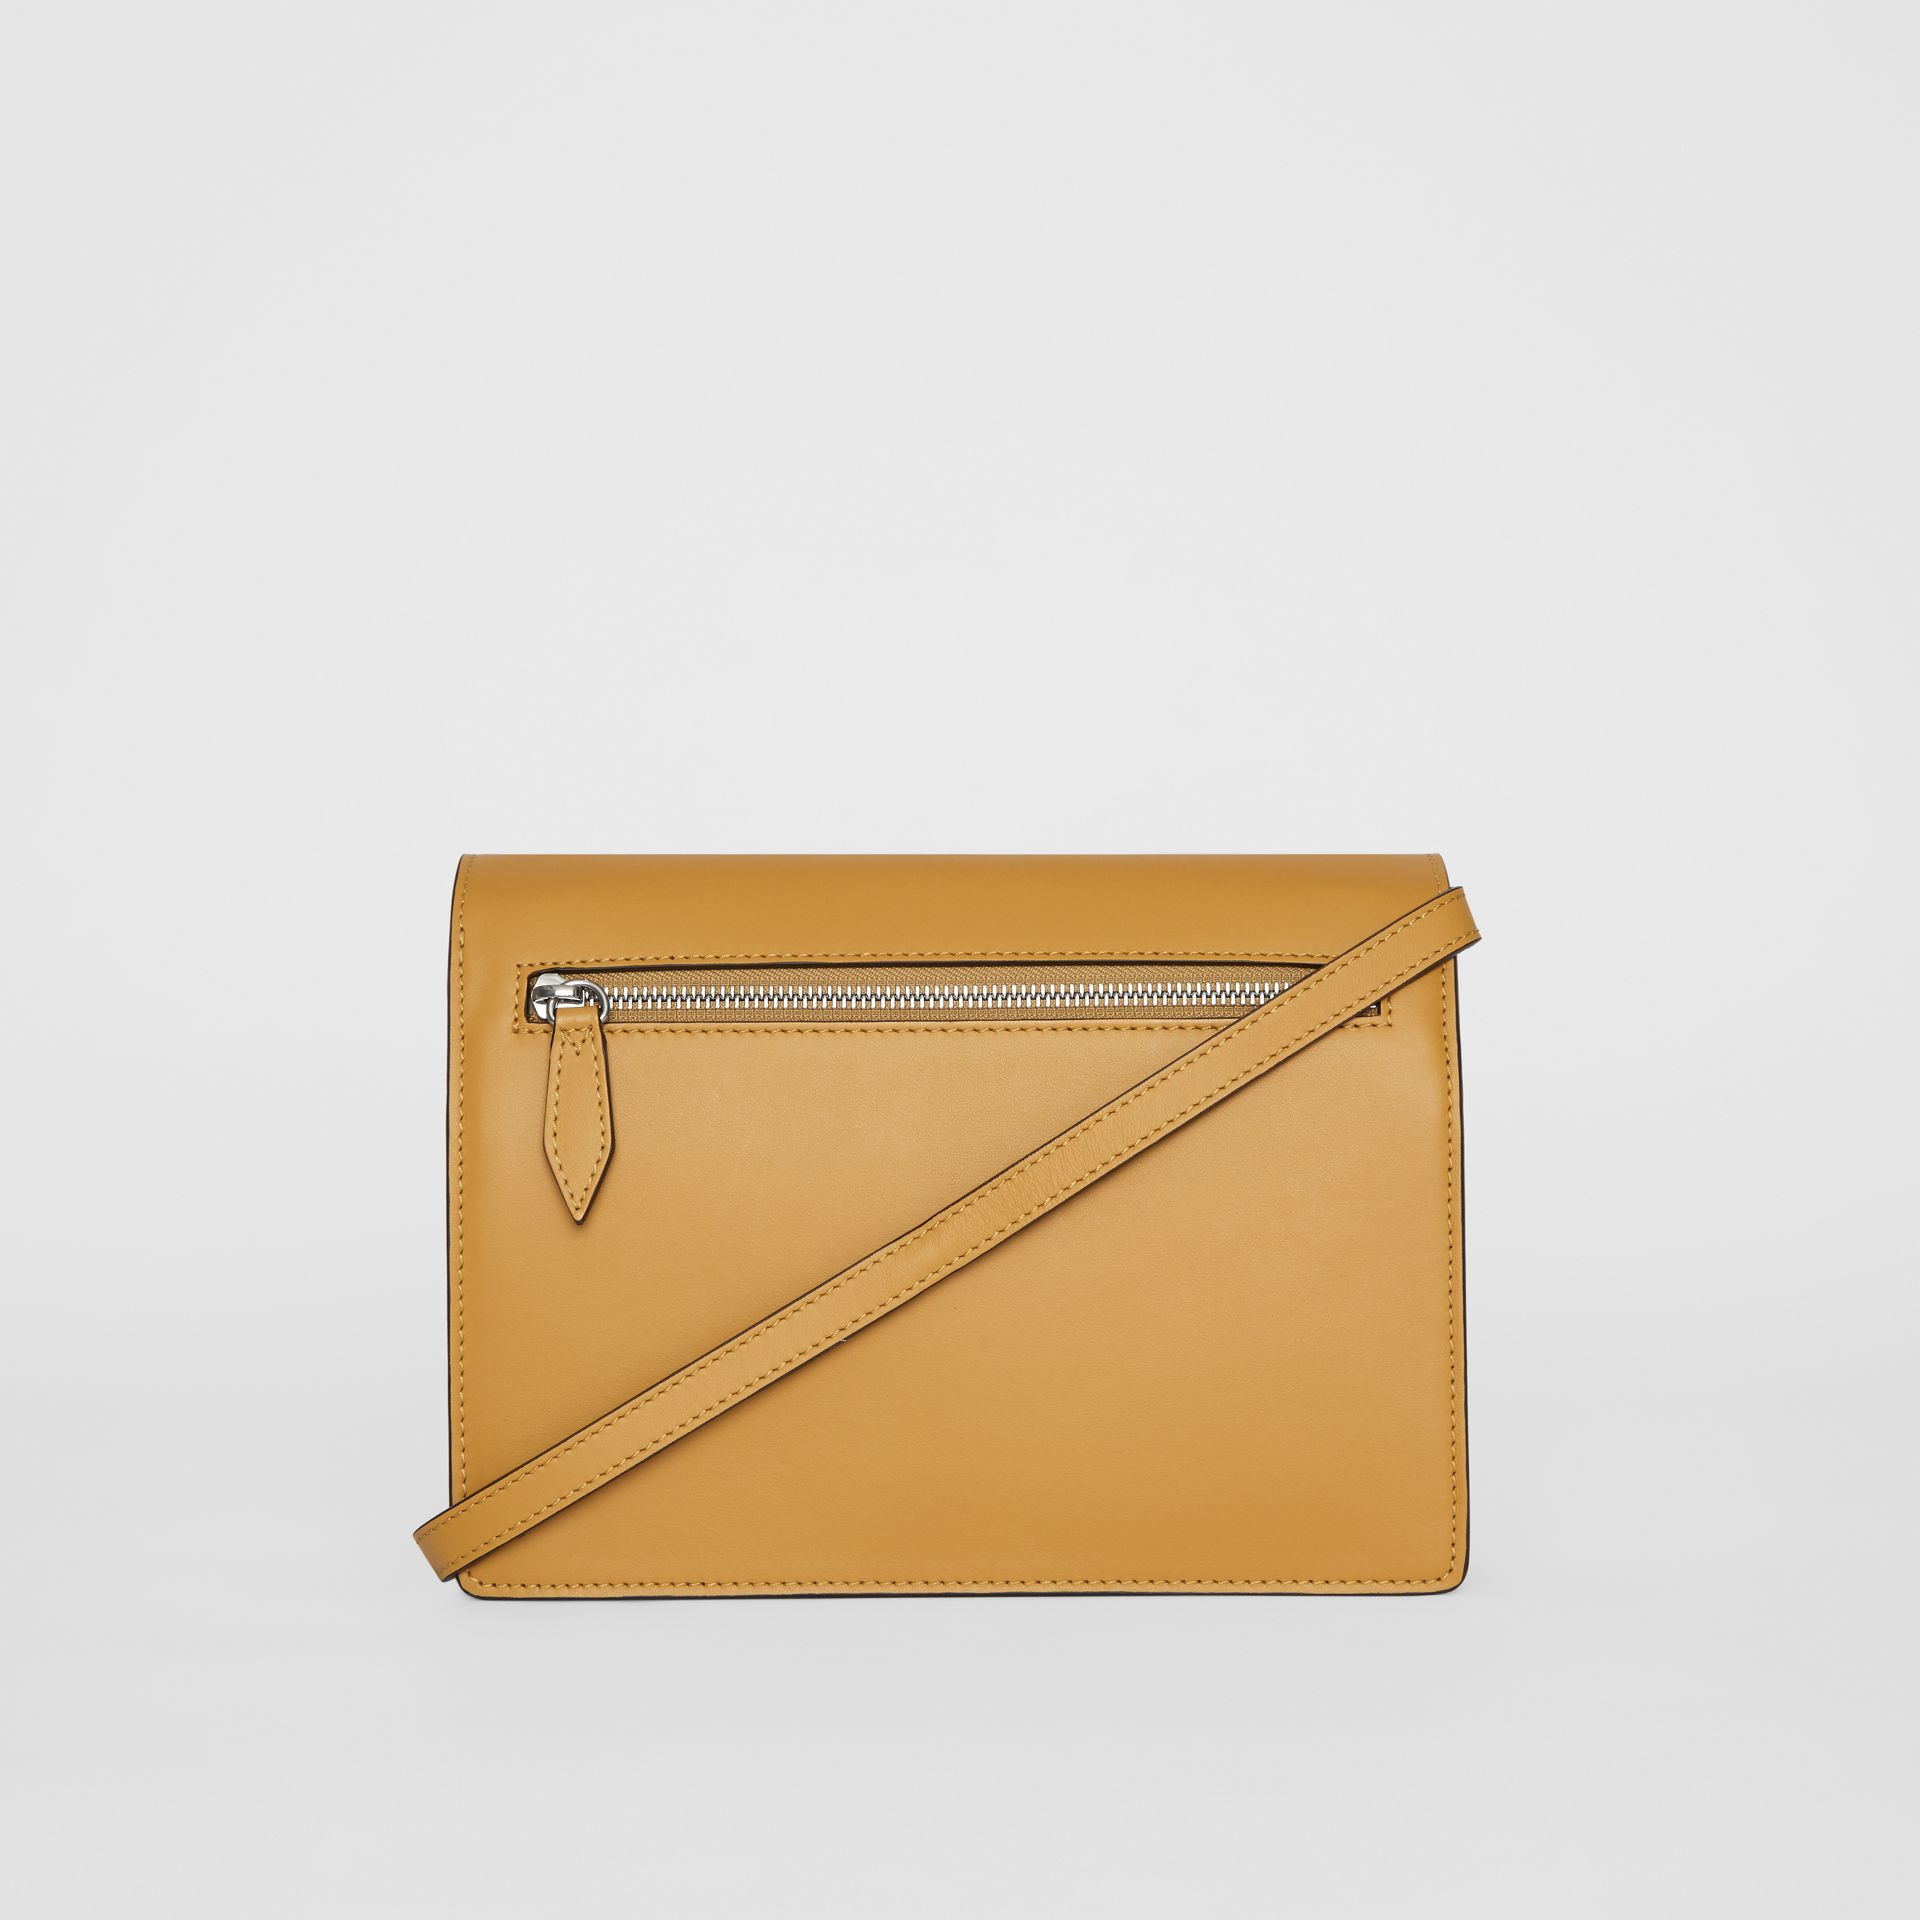 Two-tone Leather Crossbody Bag in Limestone/cornflower Yellow - Women | Burberry - gallery image 7